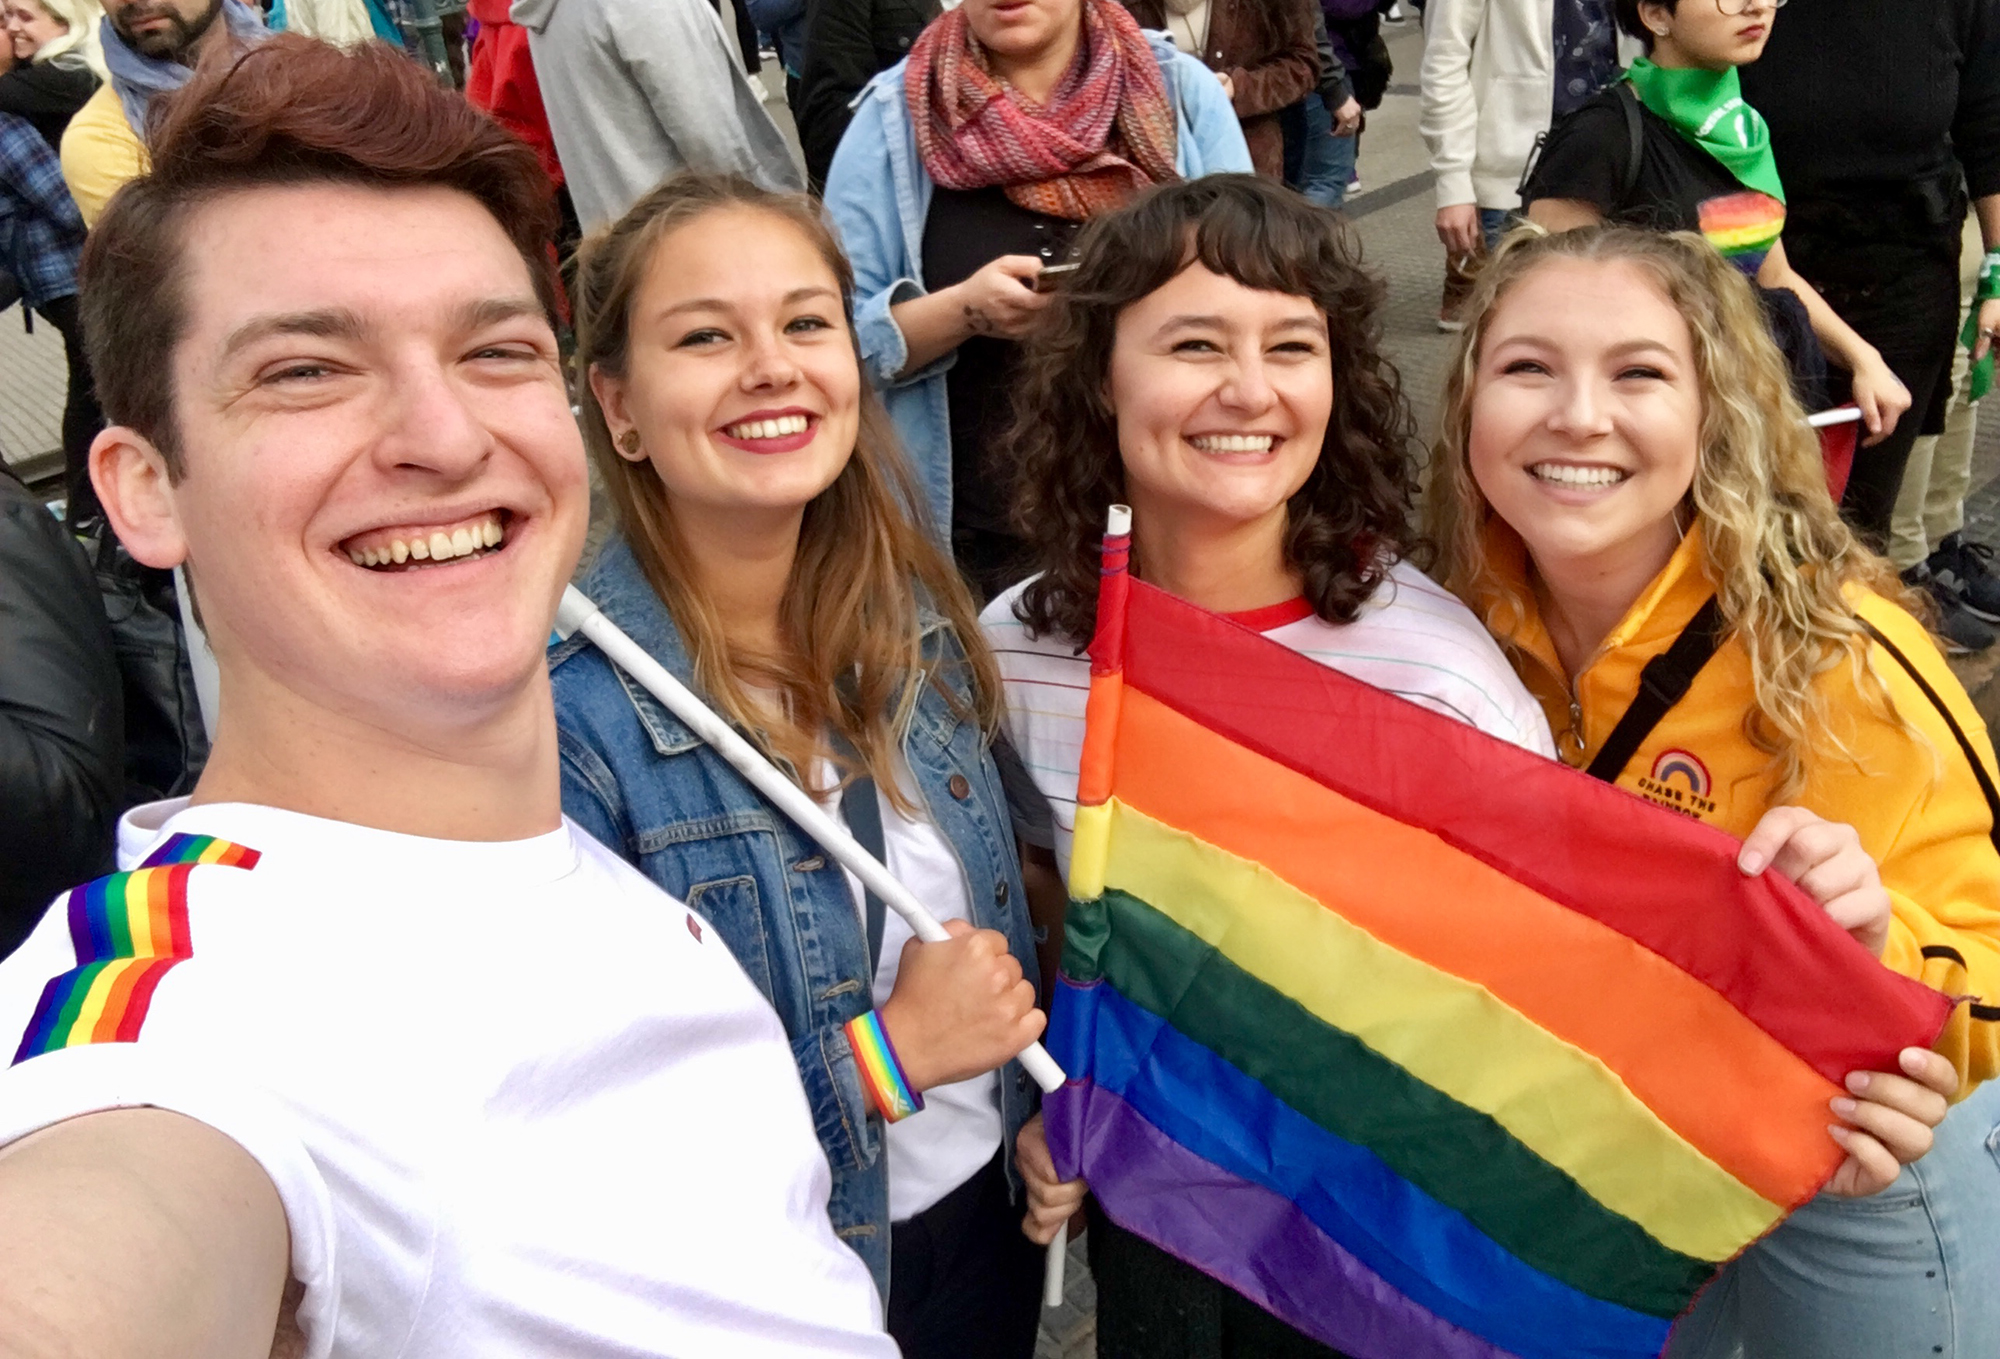 Alexa and her friends holding up a rainbow flag at the pride parade.